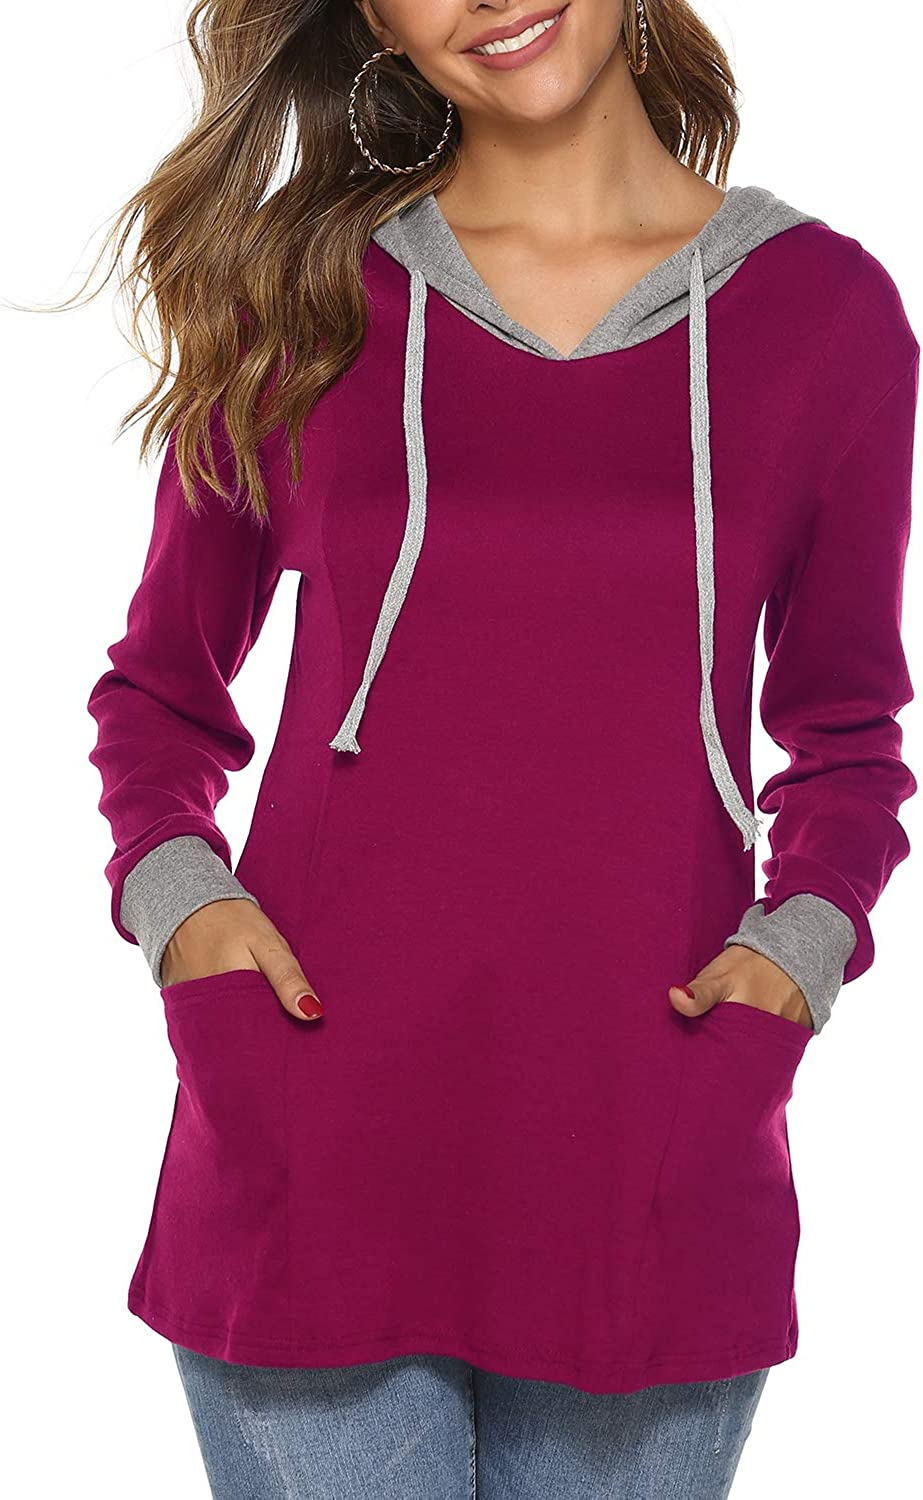 Sweetnight Women's Long Sleeve Hooded Sweatshirt Color Block Pullover Hoodies Tunic Tops with Pockets